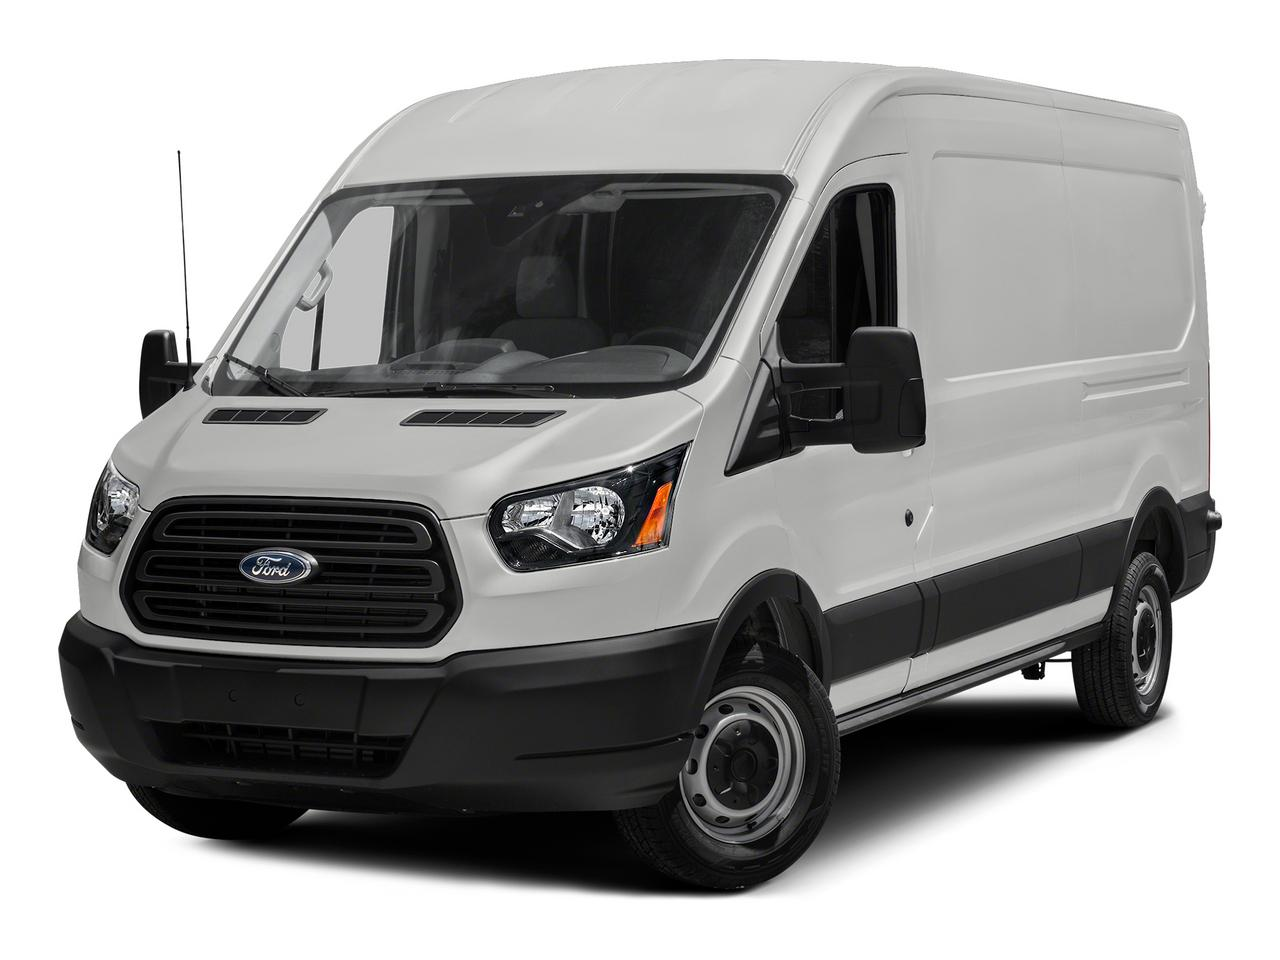 2015 Ford Transit Cargo Van Vehicle Photo in Boyertown, PA 19512